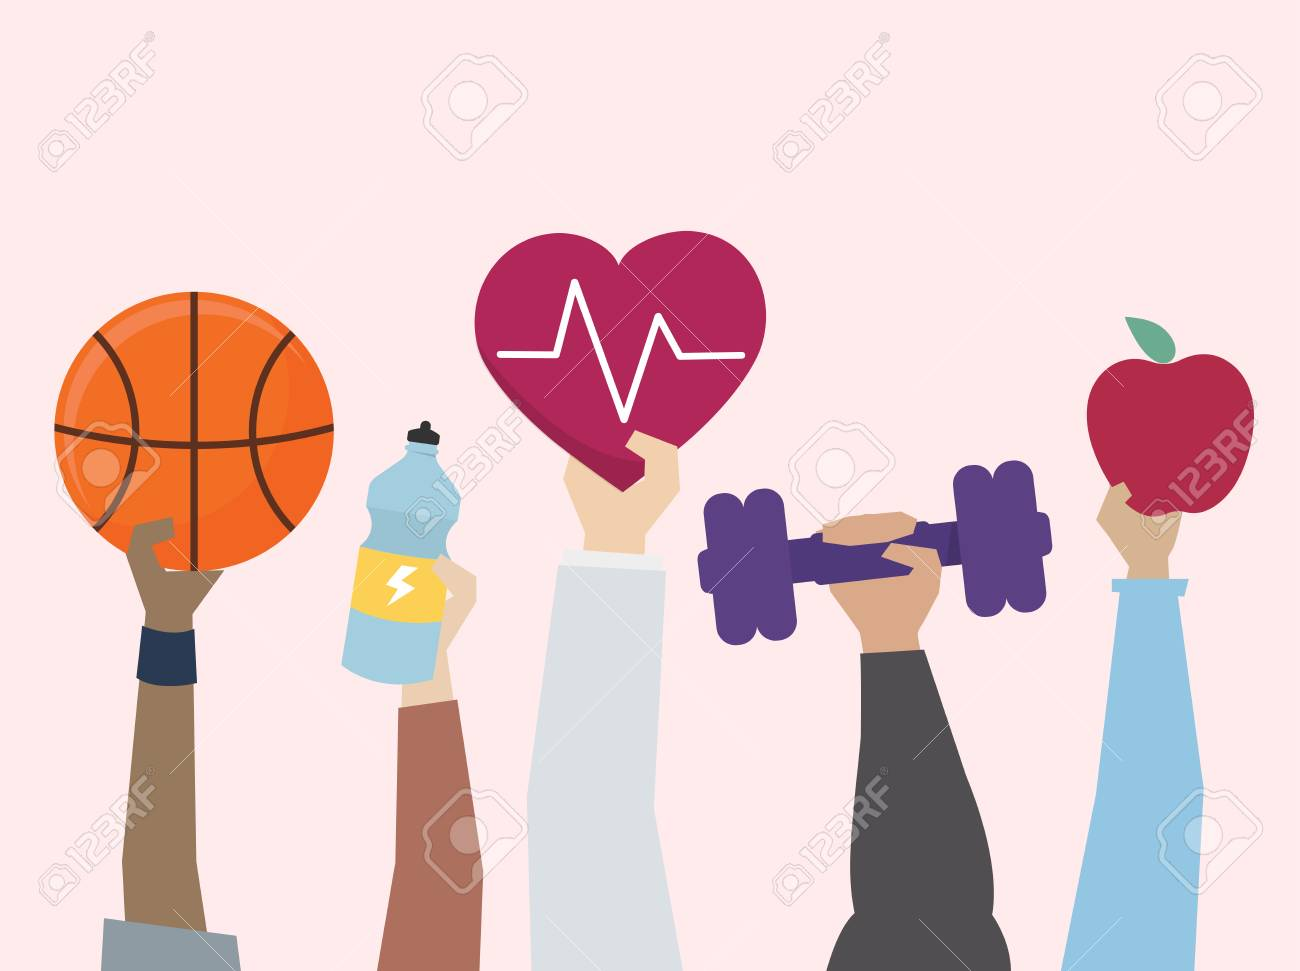 Illustration of exercise and healthy lifestyle concept - 109643847